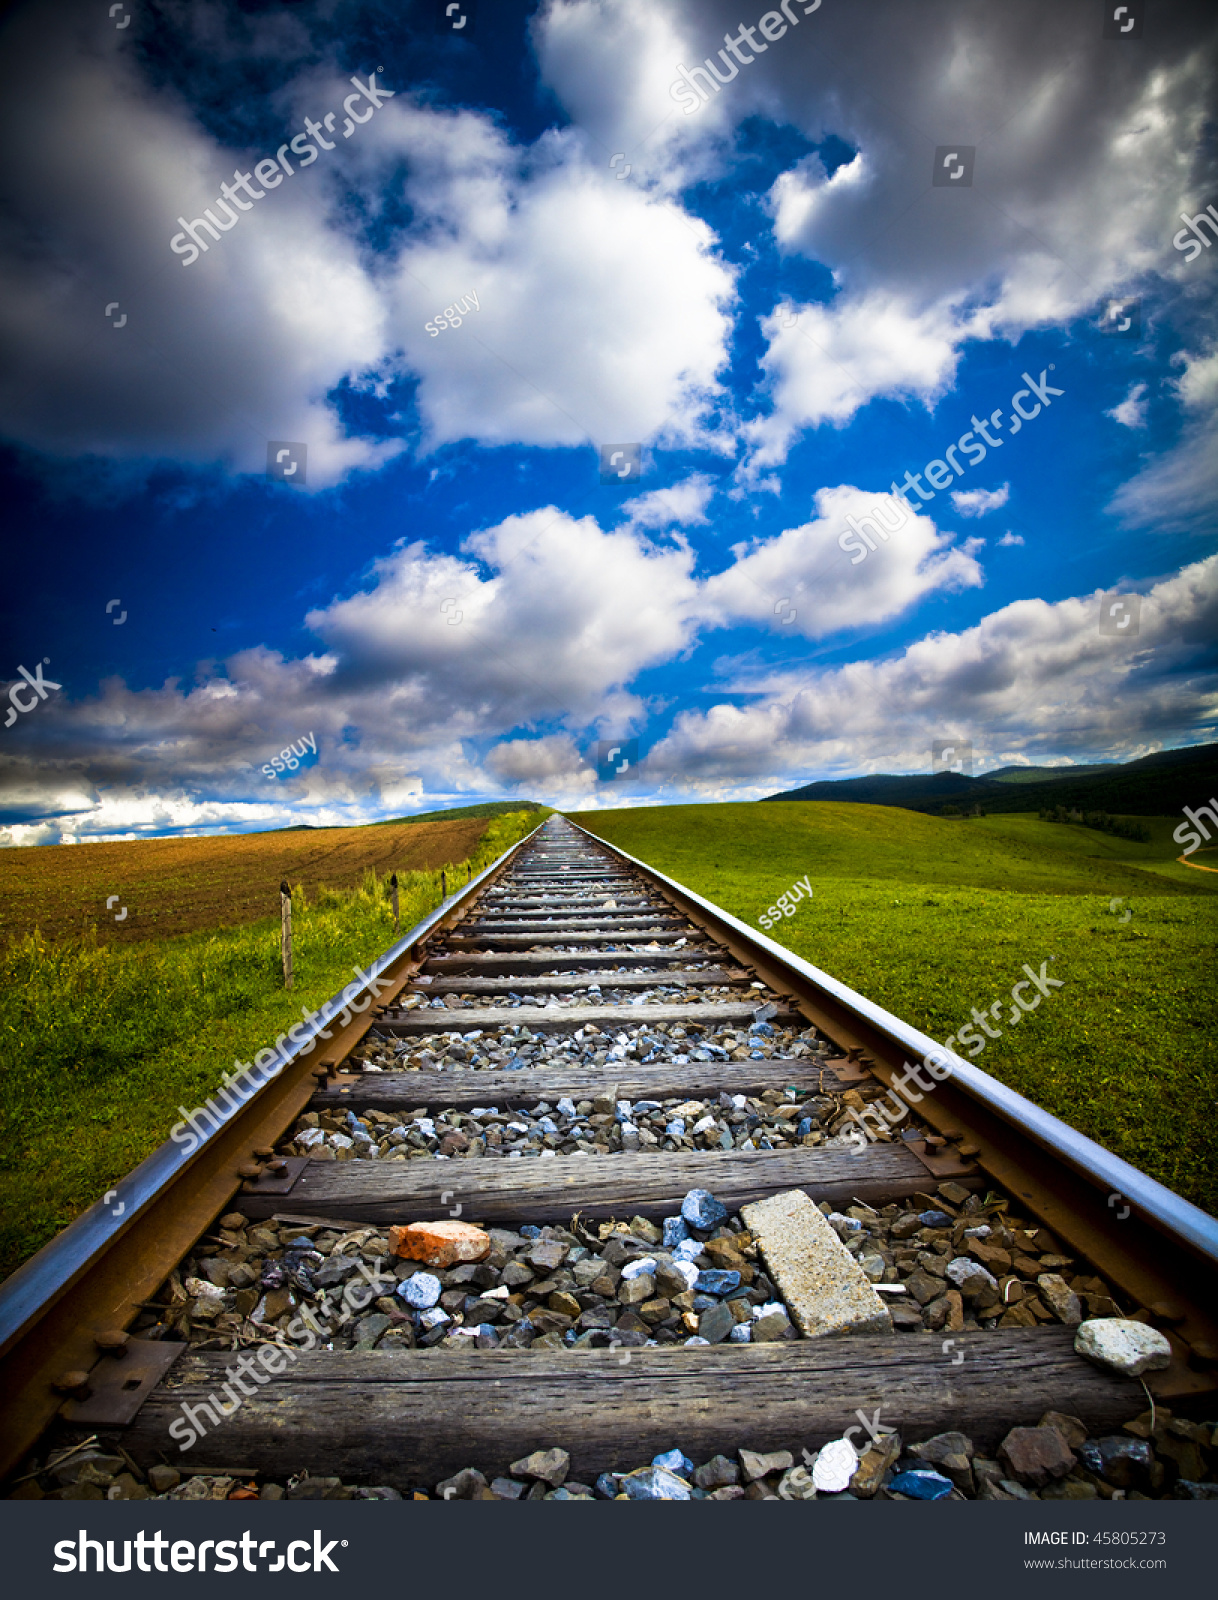 Background Highspeed Train Motion Blur Outdoor Stock Photo 1218x1600